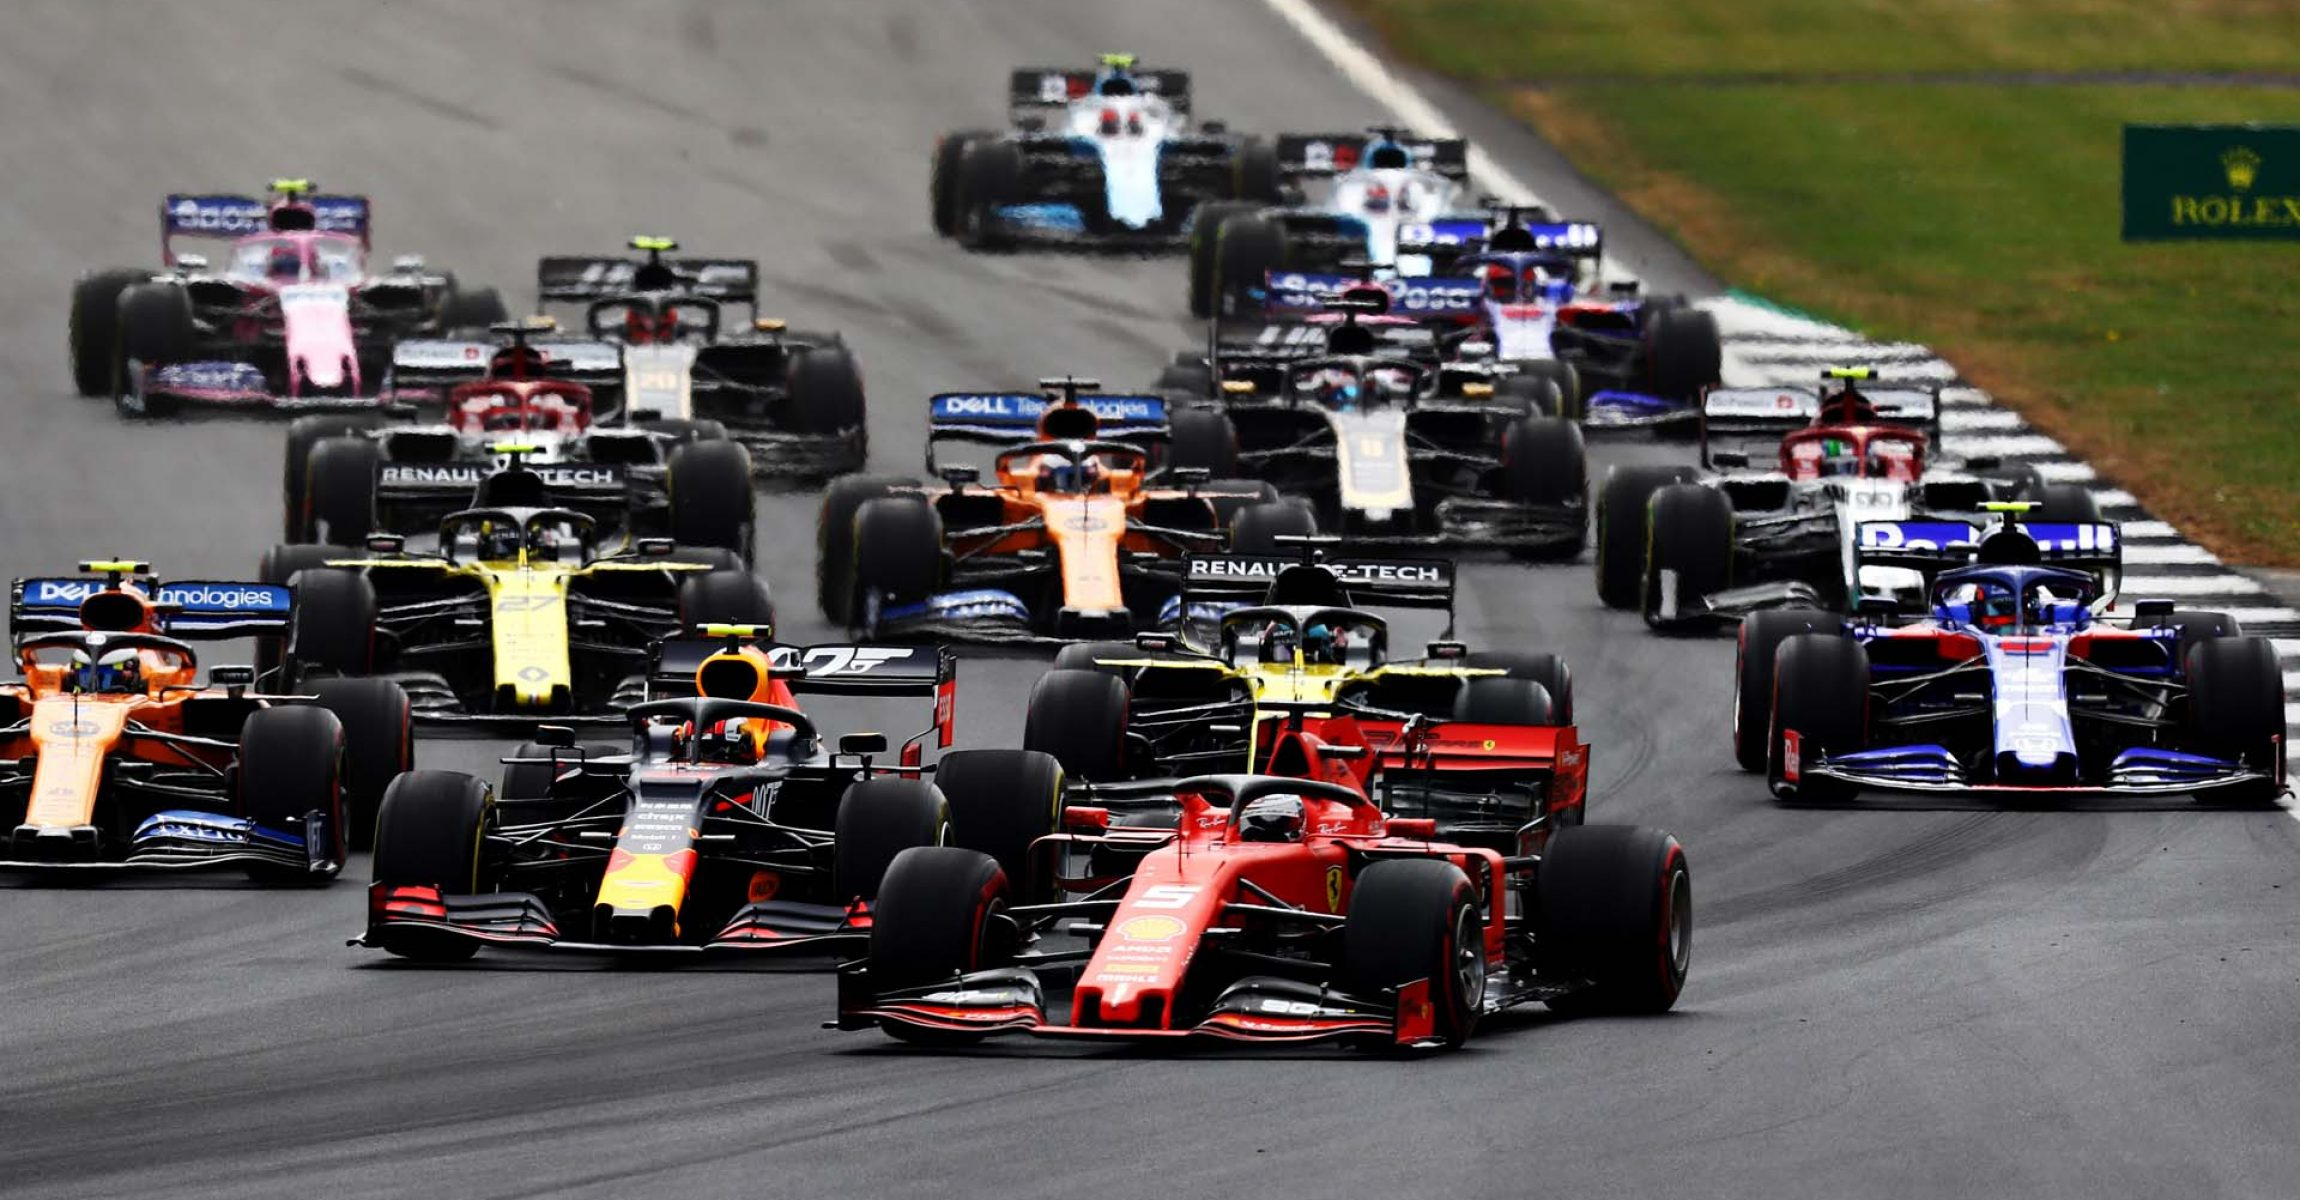 NORTHAMPTON, ENGLAND - JULY 14: Pierre Gasly of France driving the (10) Aston Martin Red Bull Racing RB15 and Sebastian Vettel of Germany driving the (5) Scuderia Ferrari SF90 battle for position at the start during the F1 Grand Prix of Great Britain at Silverstone on July 14, 2019 in Northampton, England. (Photo by Mark Thompson/Getty Images) // Getty Images / Red Bull Content Pool // AP-1ZXSD5NDN2111 // Usage for editorial use only // Please go to www.redbullcontentpool.com for further information. //